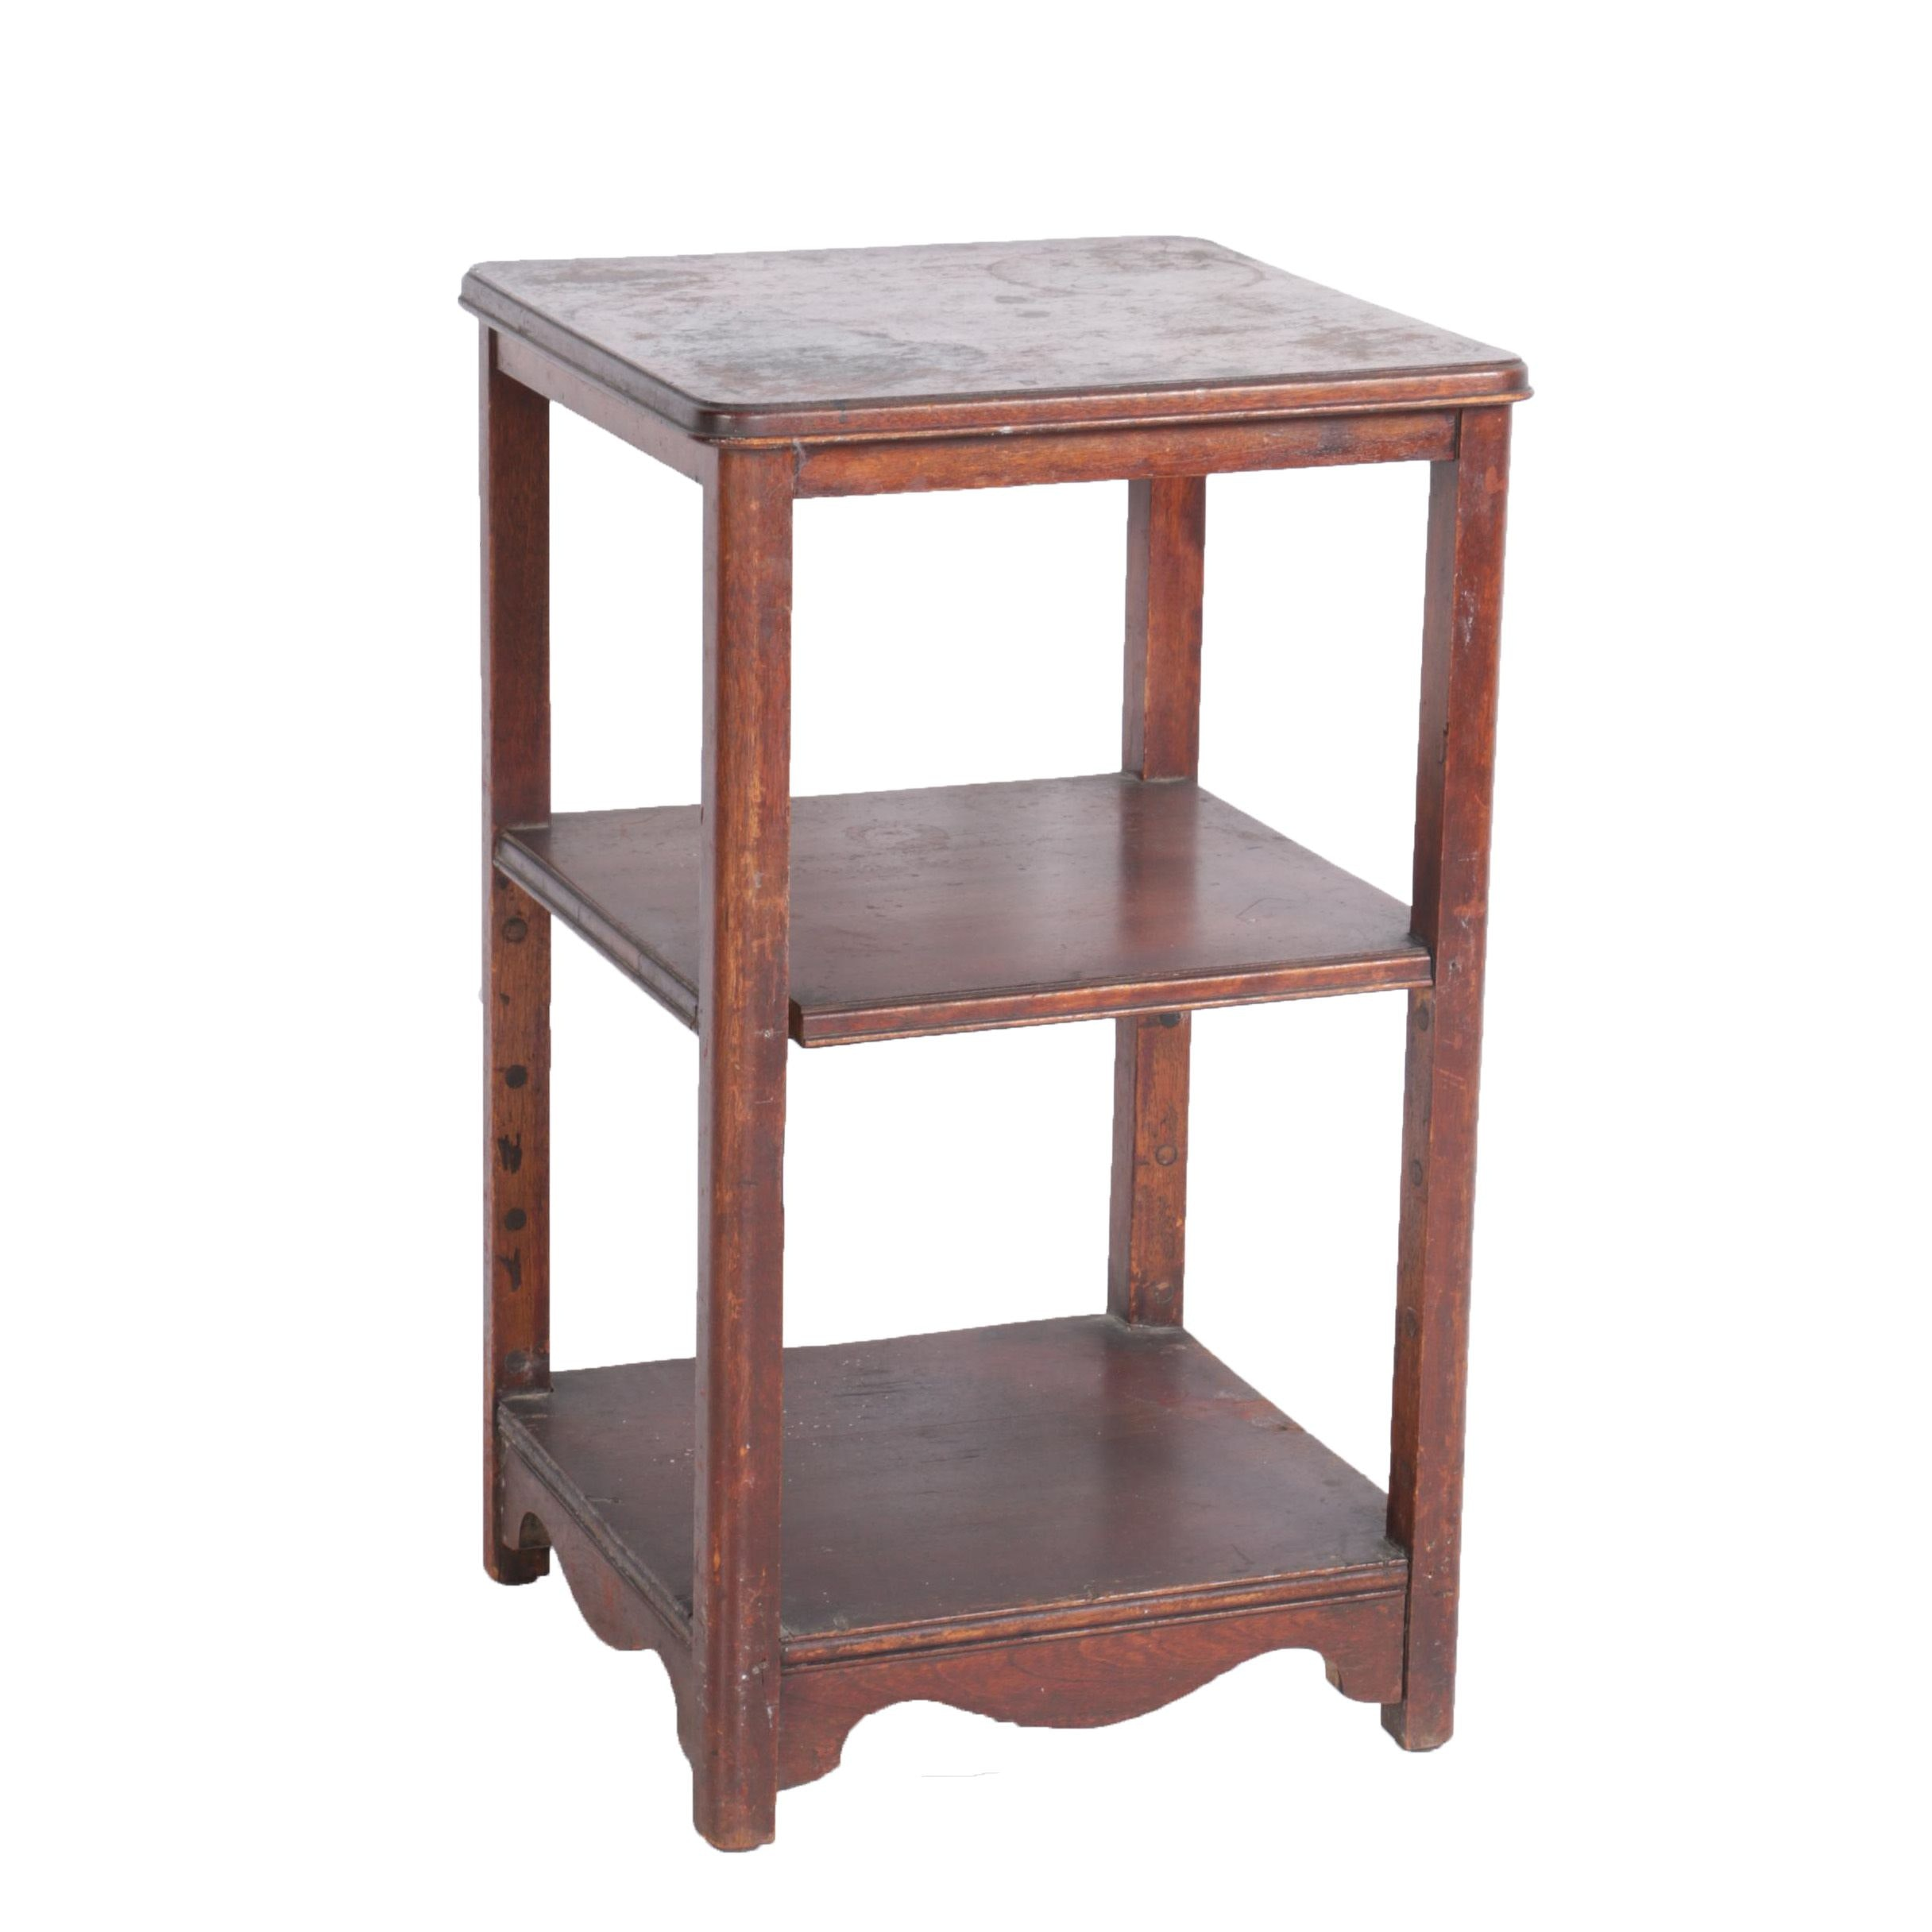 Vintage Tiered Accent Table